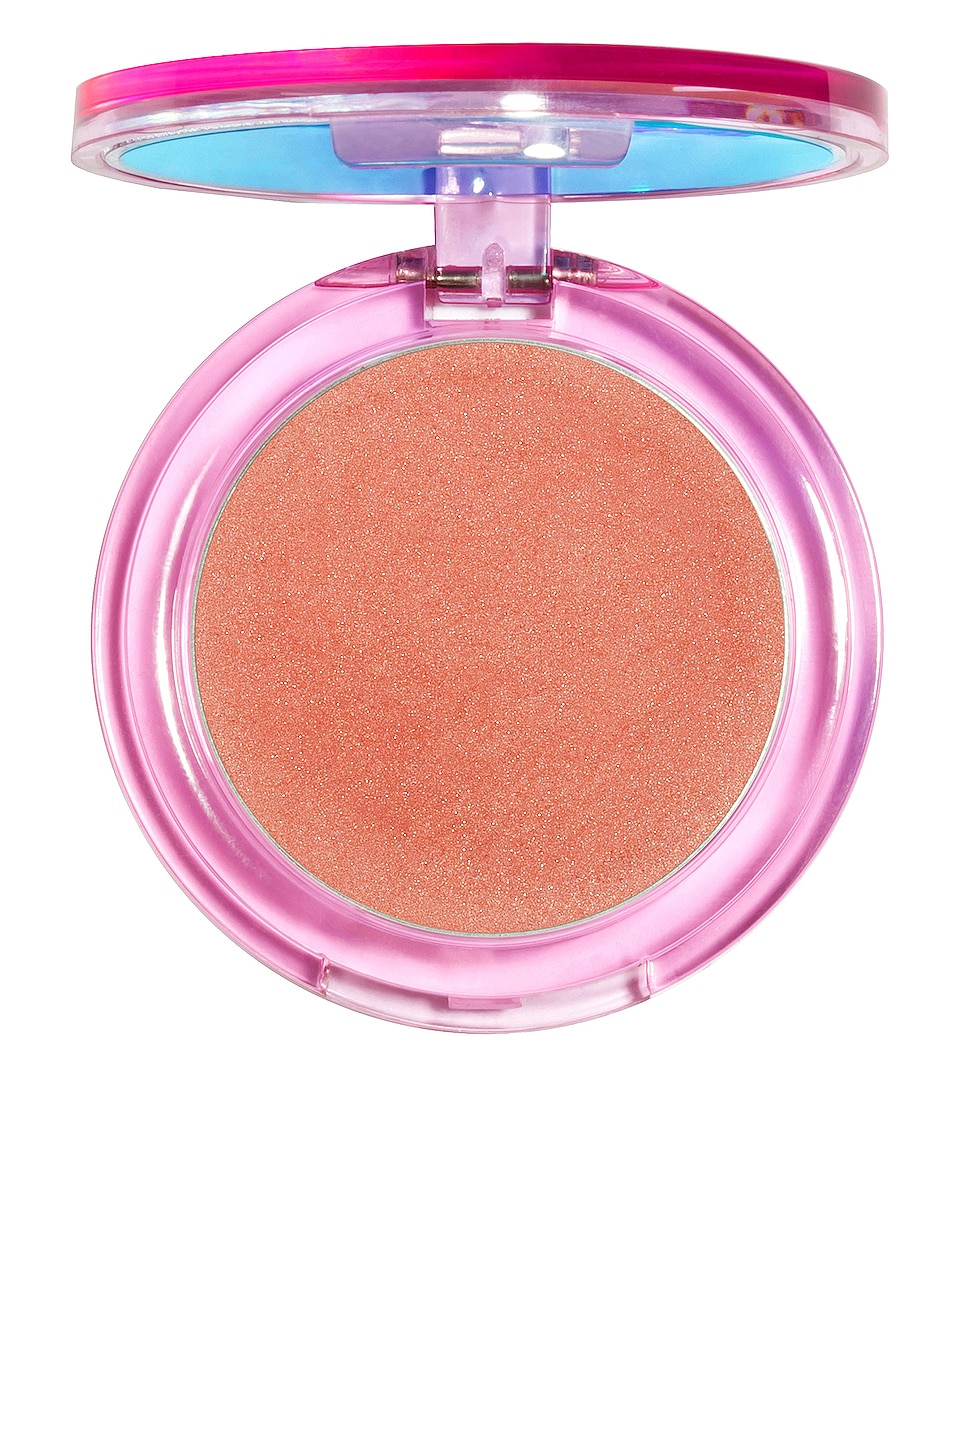 Lime Crime Glow Softwear Blush in Anthurium